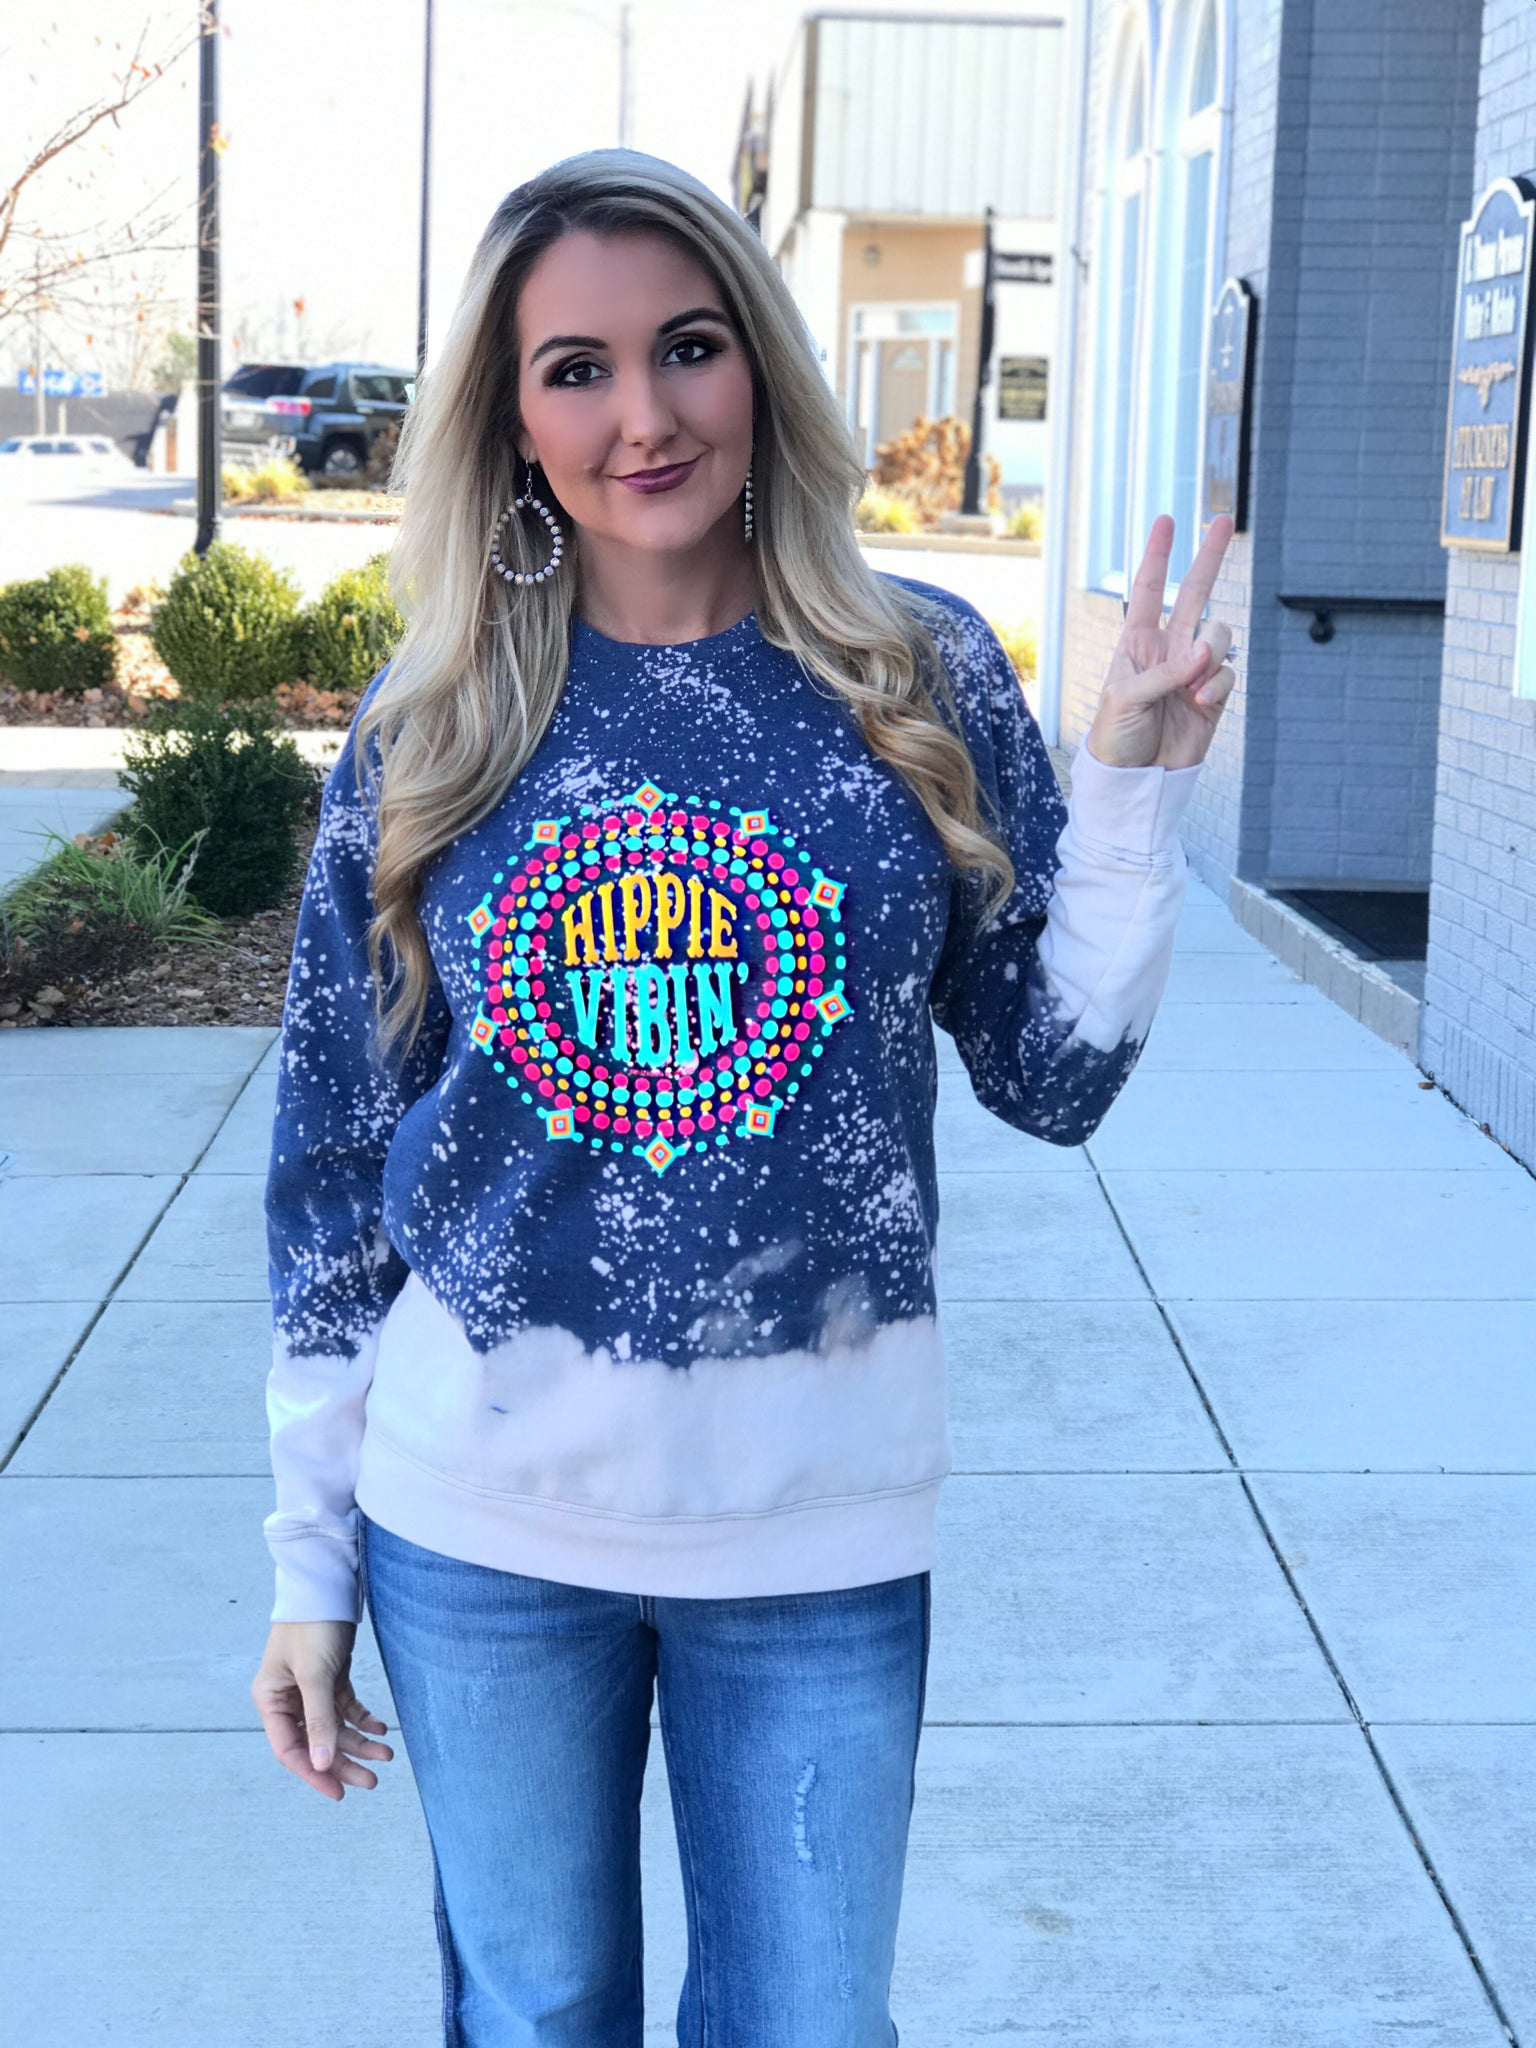 Hippie Vibin' Distressed Sweatshirt